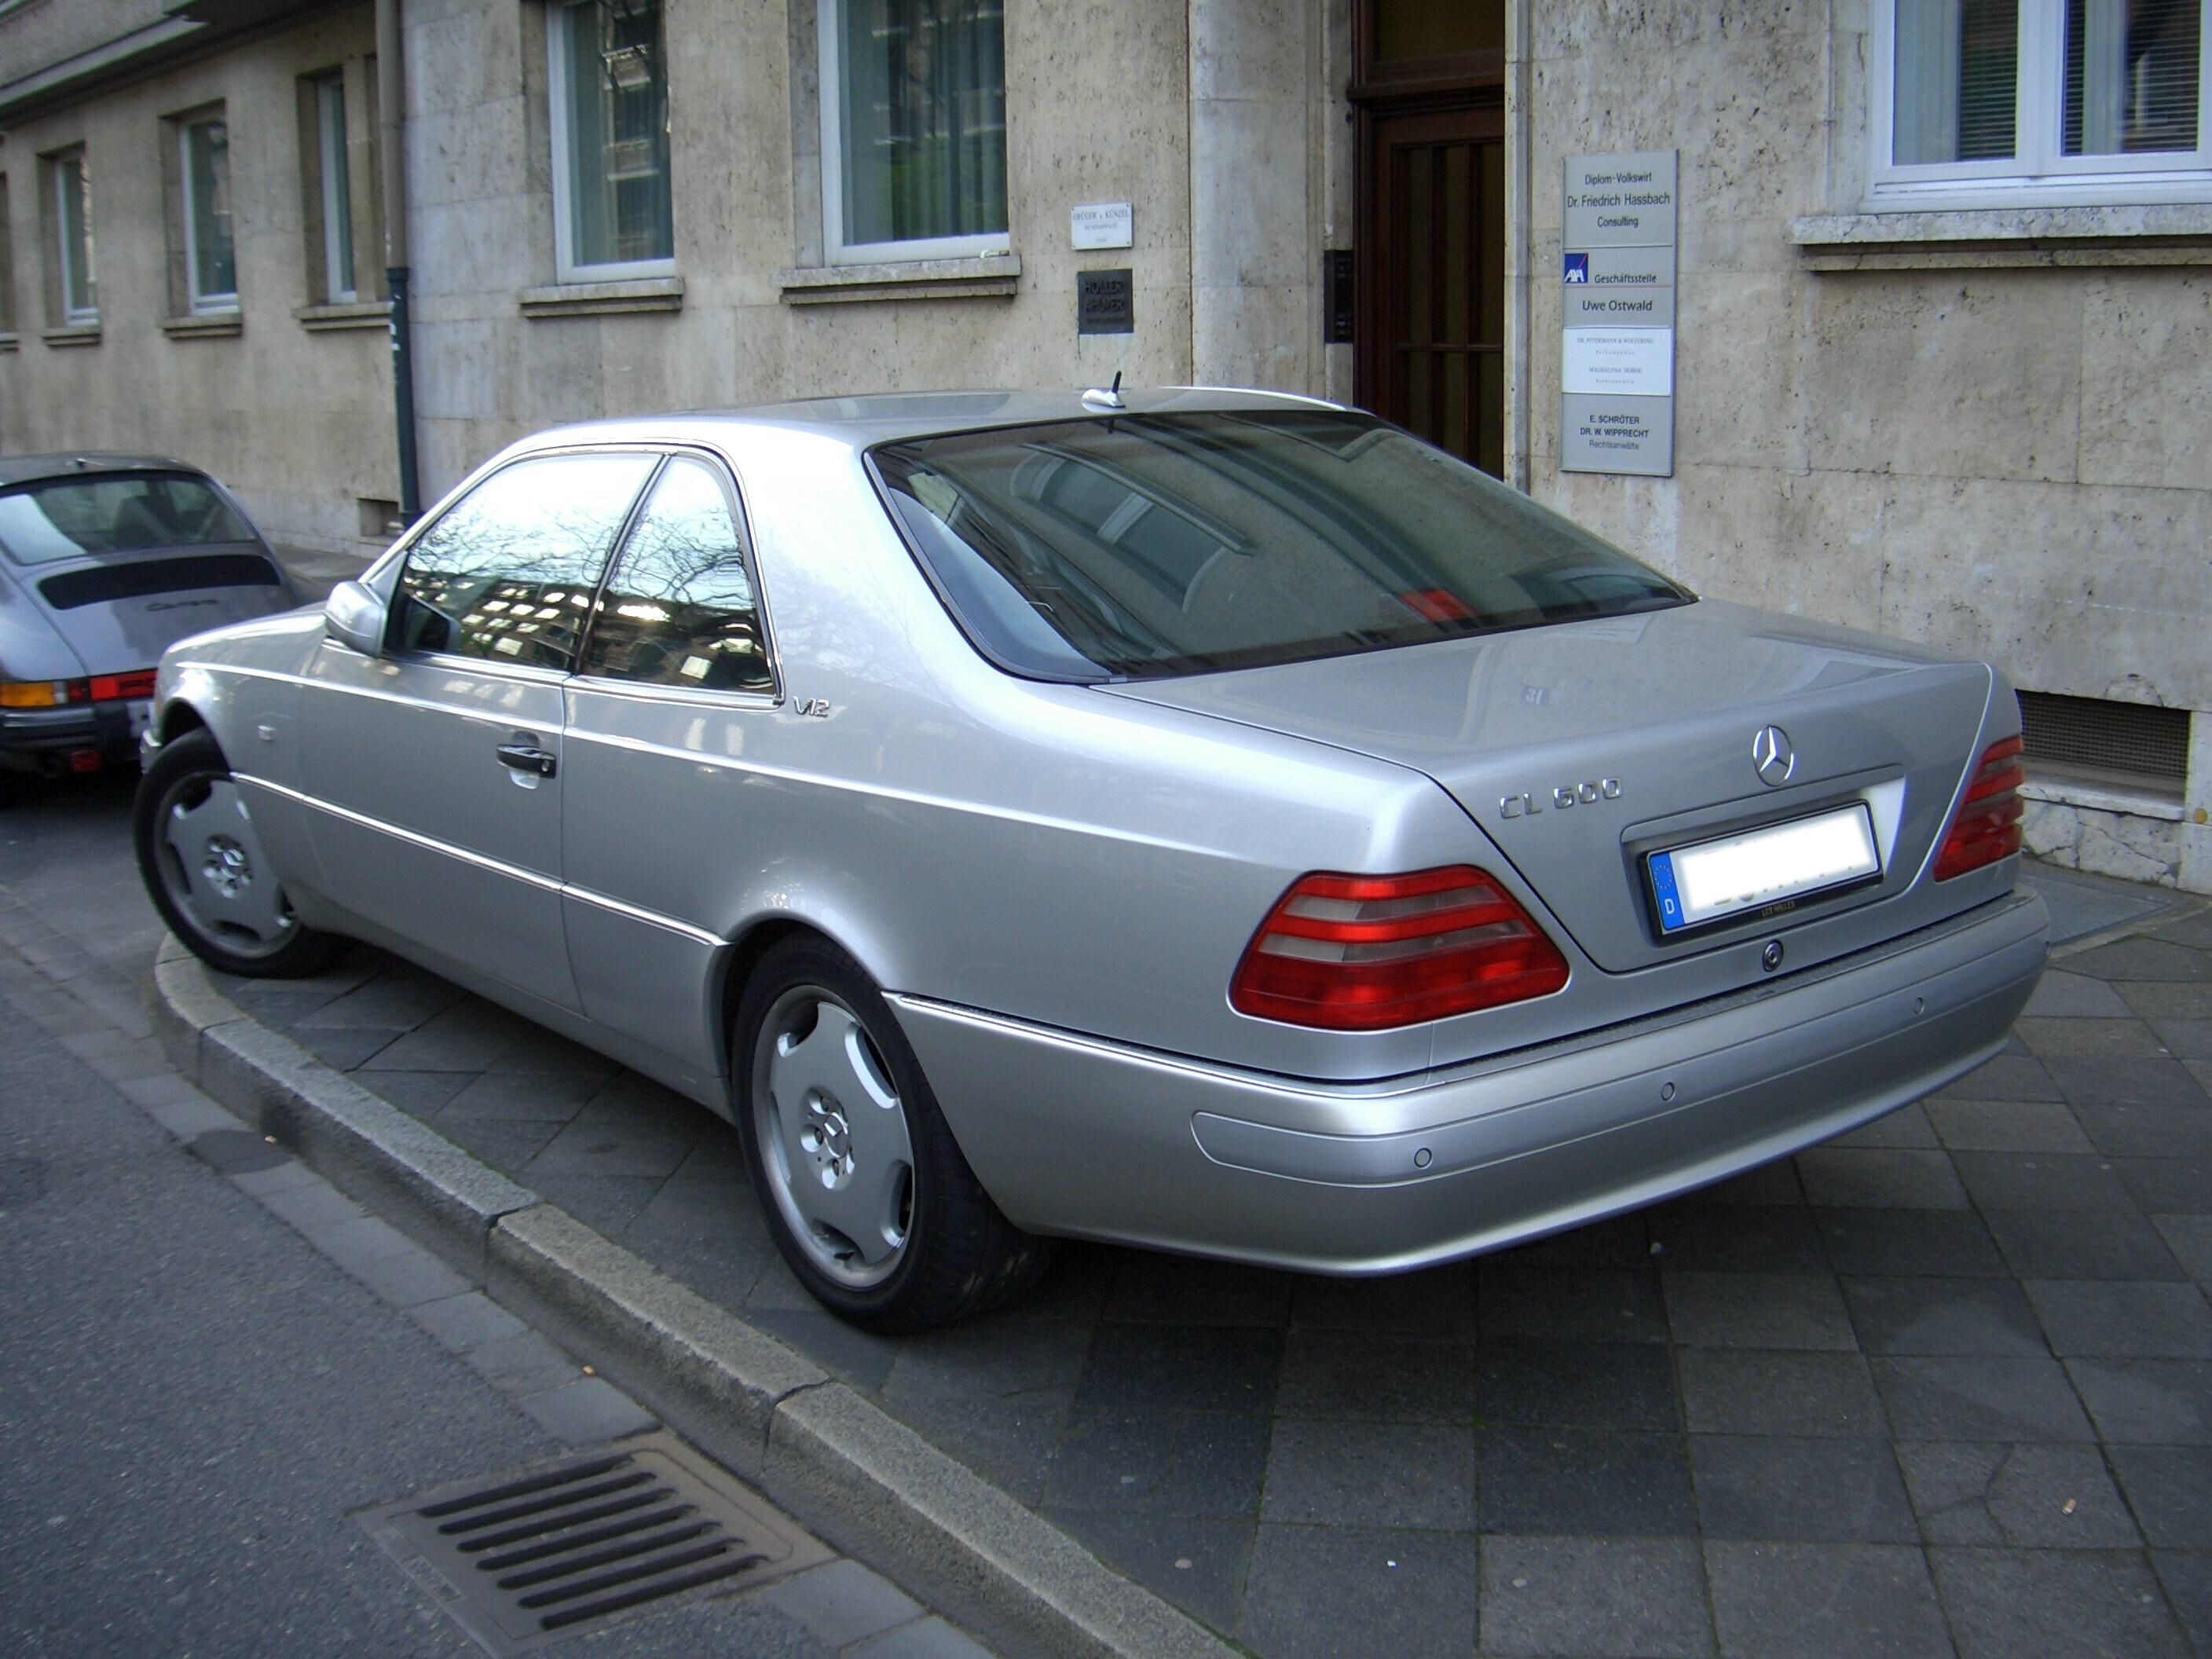 Mercedes benz w140 coup volante pinterest mercedes benz cars and classic mercedes